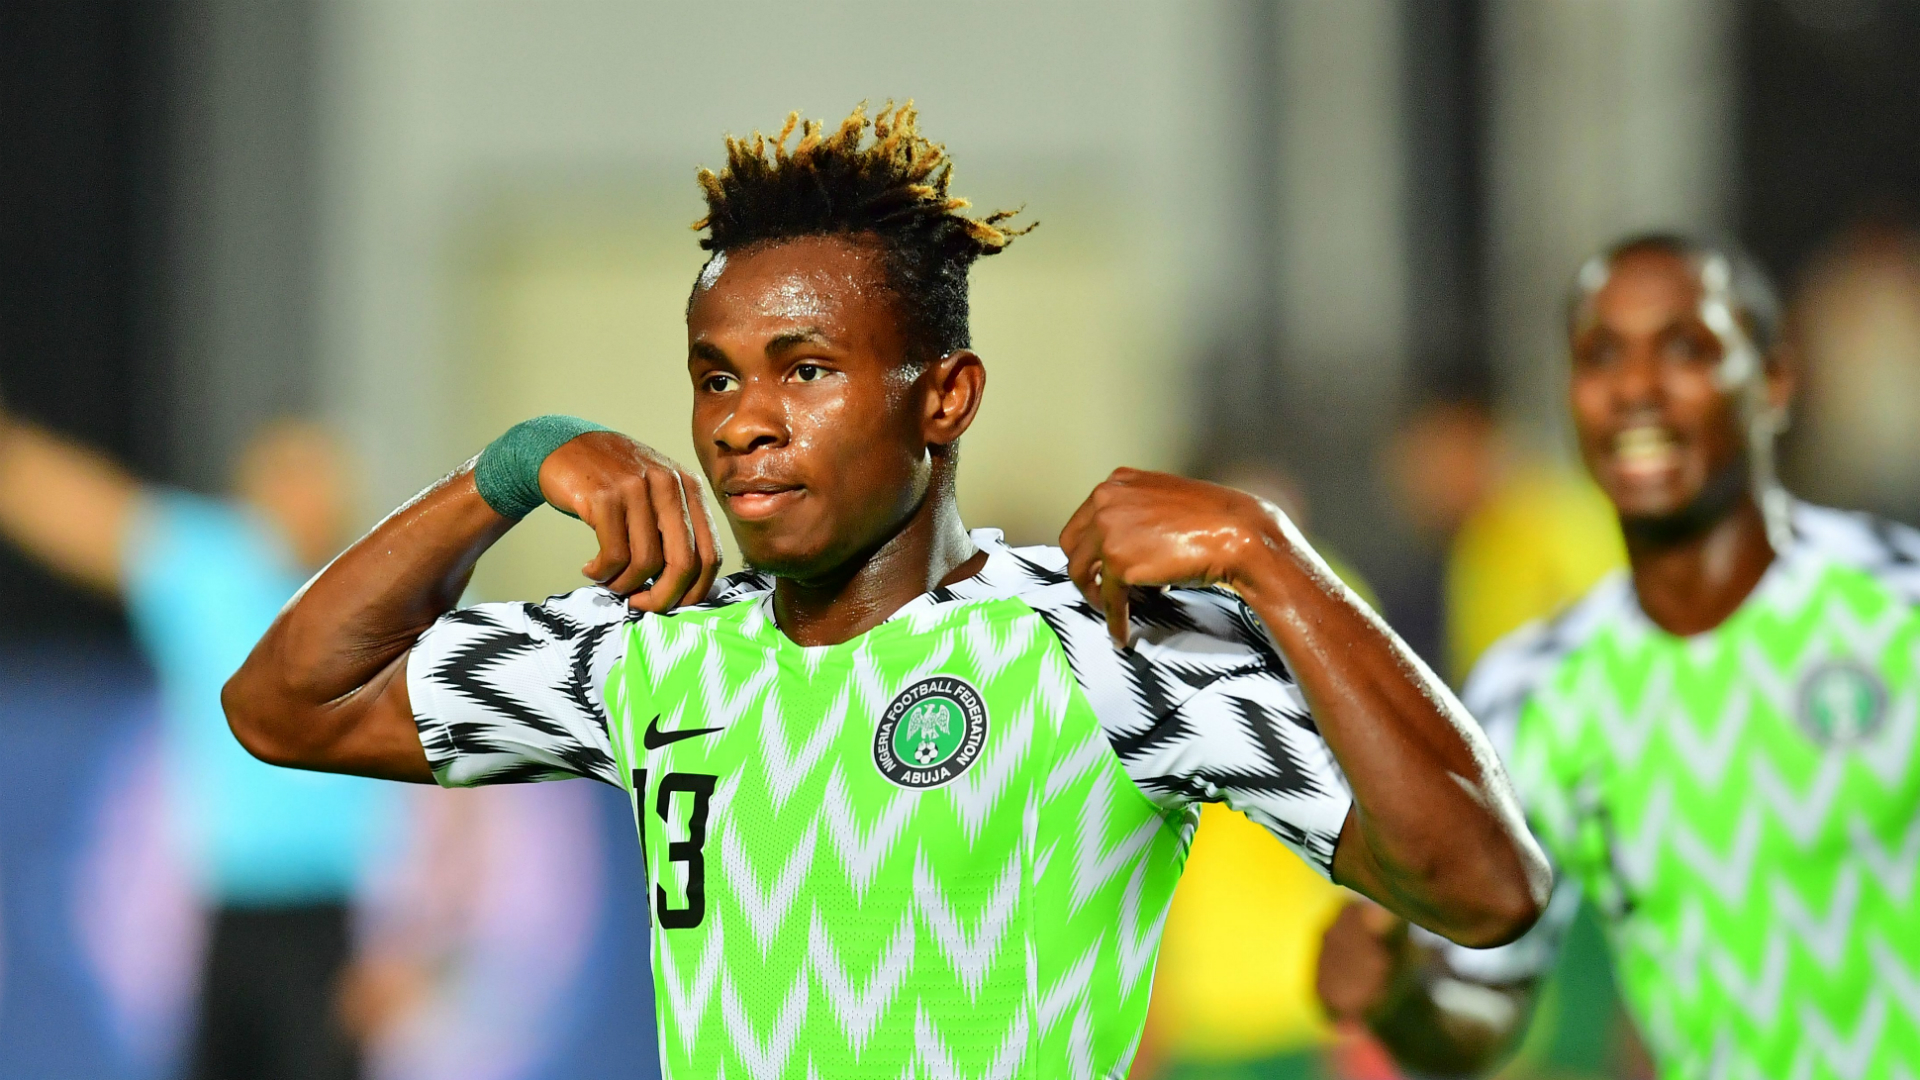 Afcon 2019: Twitter reacts as Nigeria beat South Africa in the quarter-finals